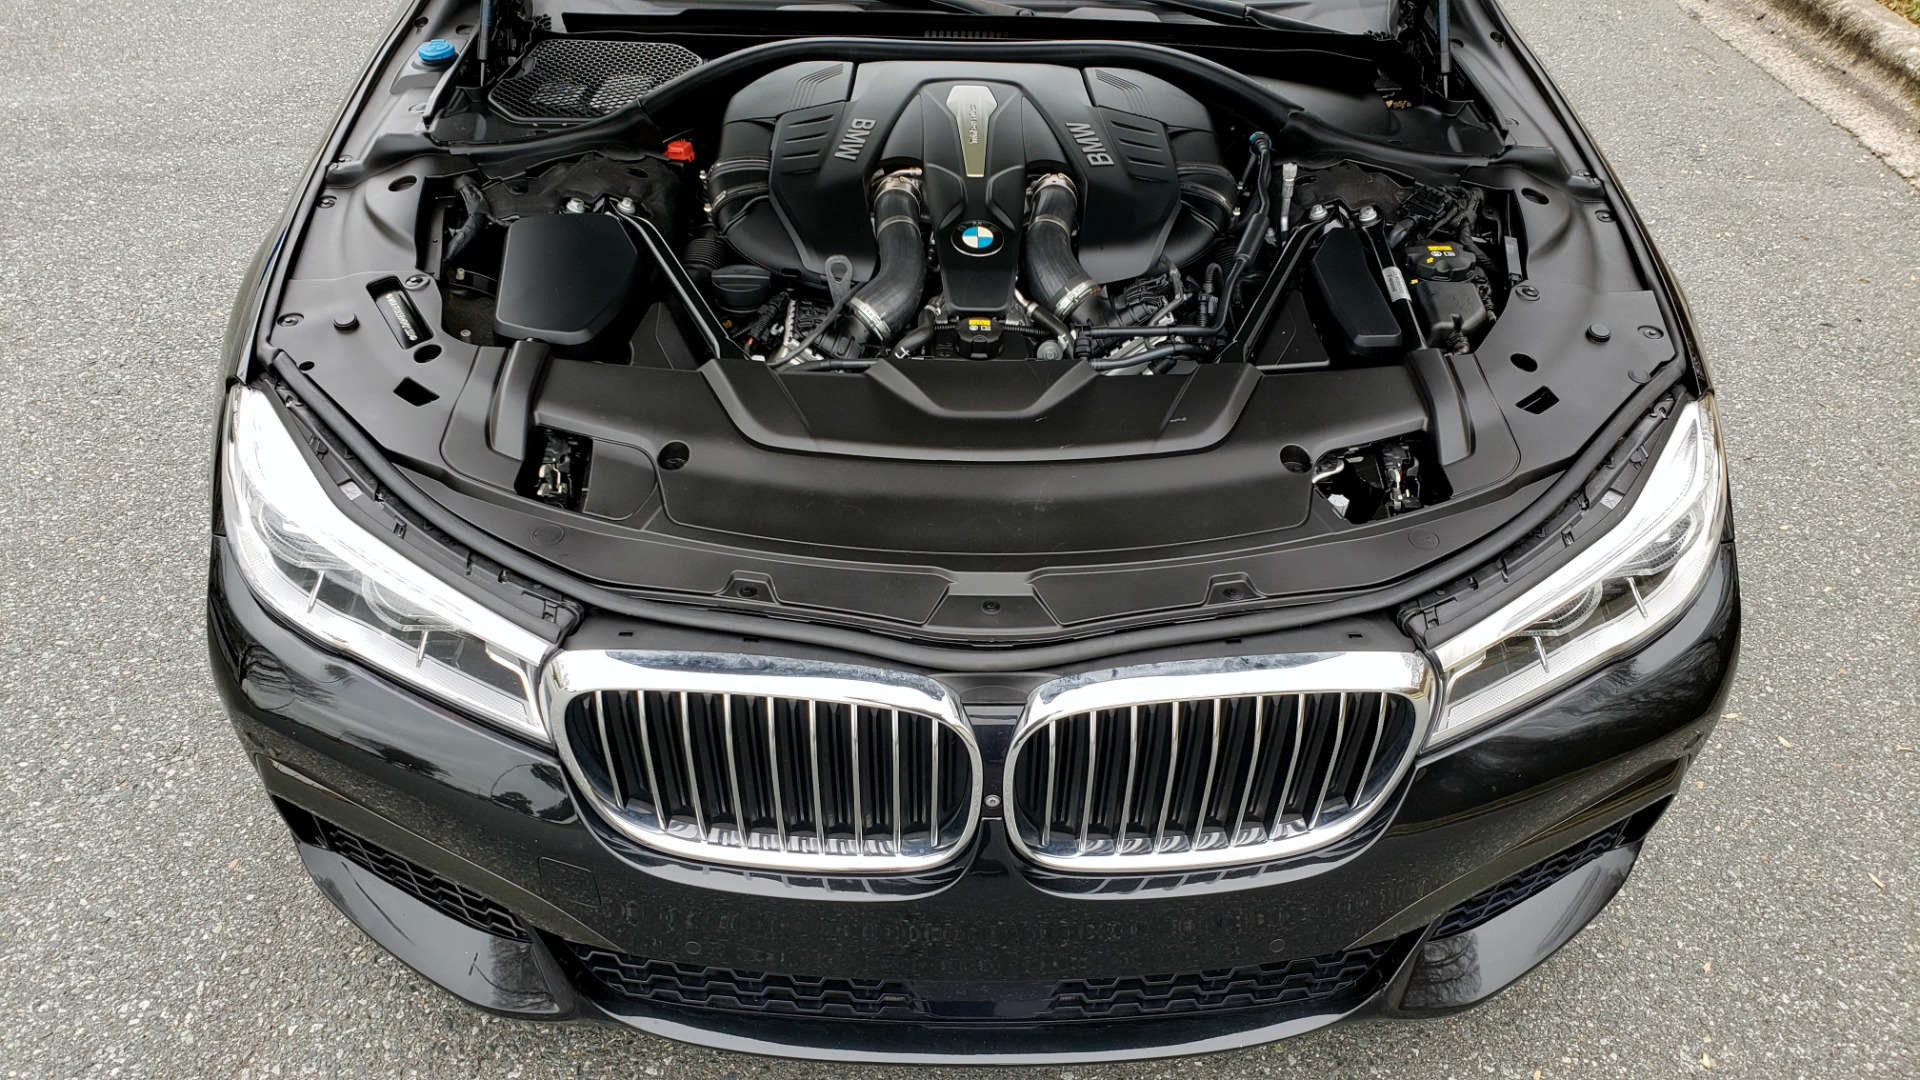 Used 2017 BMW 7 SERIES 750i M-SPORT / AUTOBAHN / EXEC / DRVR ASST PLUS II / CLD WTHR for sale Sold at Formula Imports in Charlotte NC 28227 10